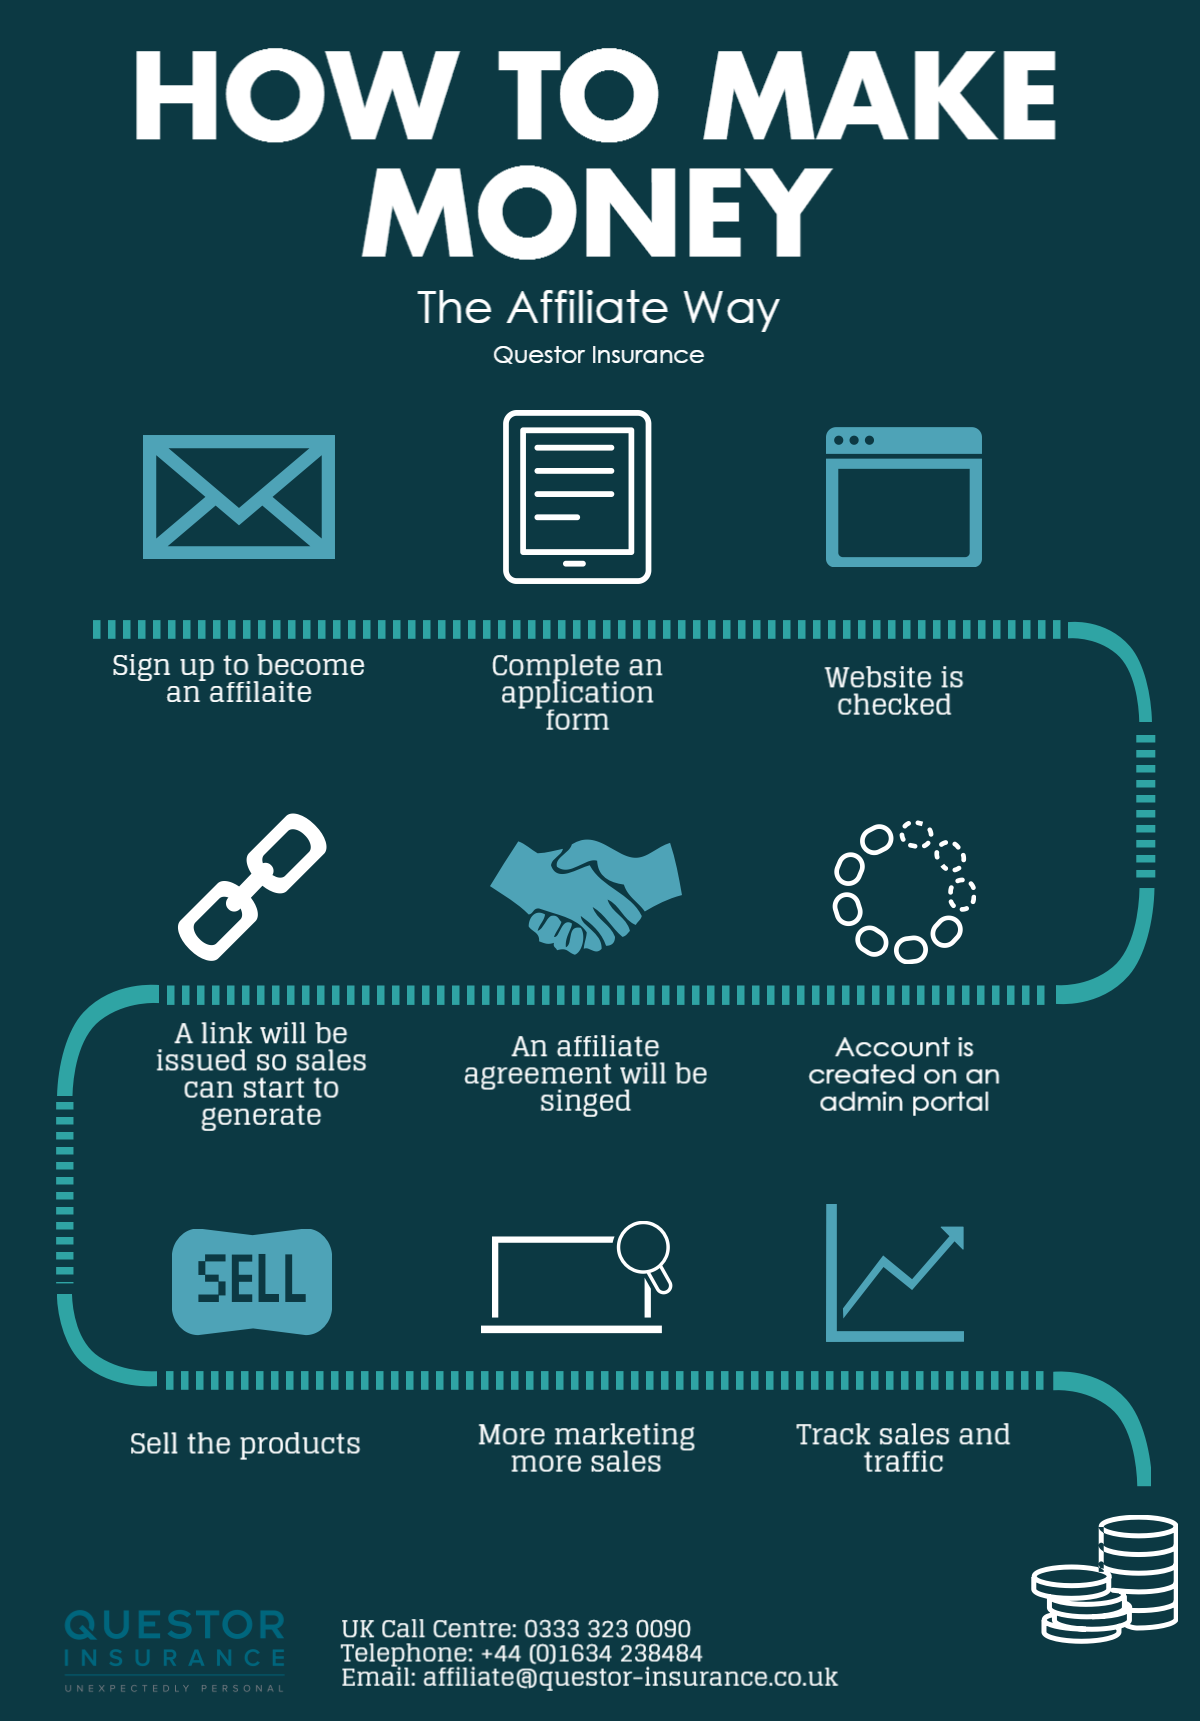 How to Make Money - The Affiliate Way